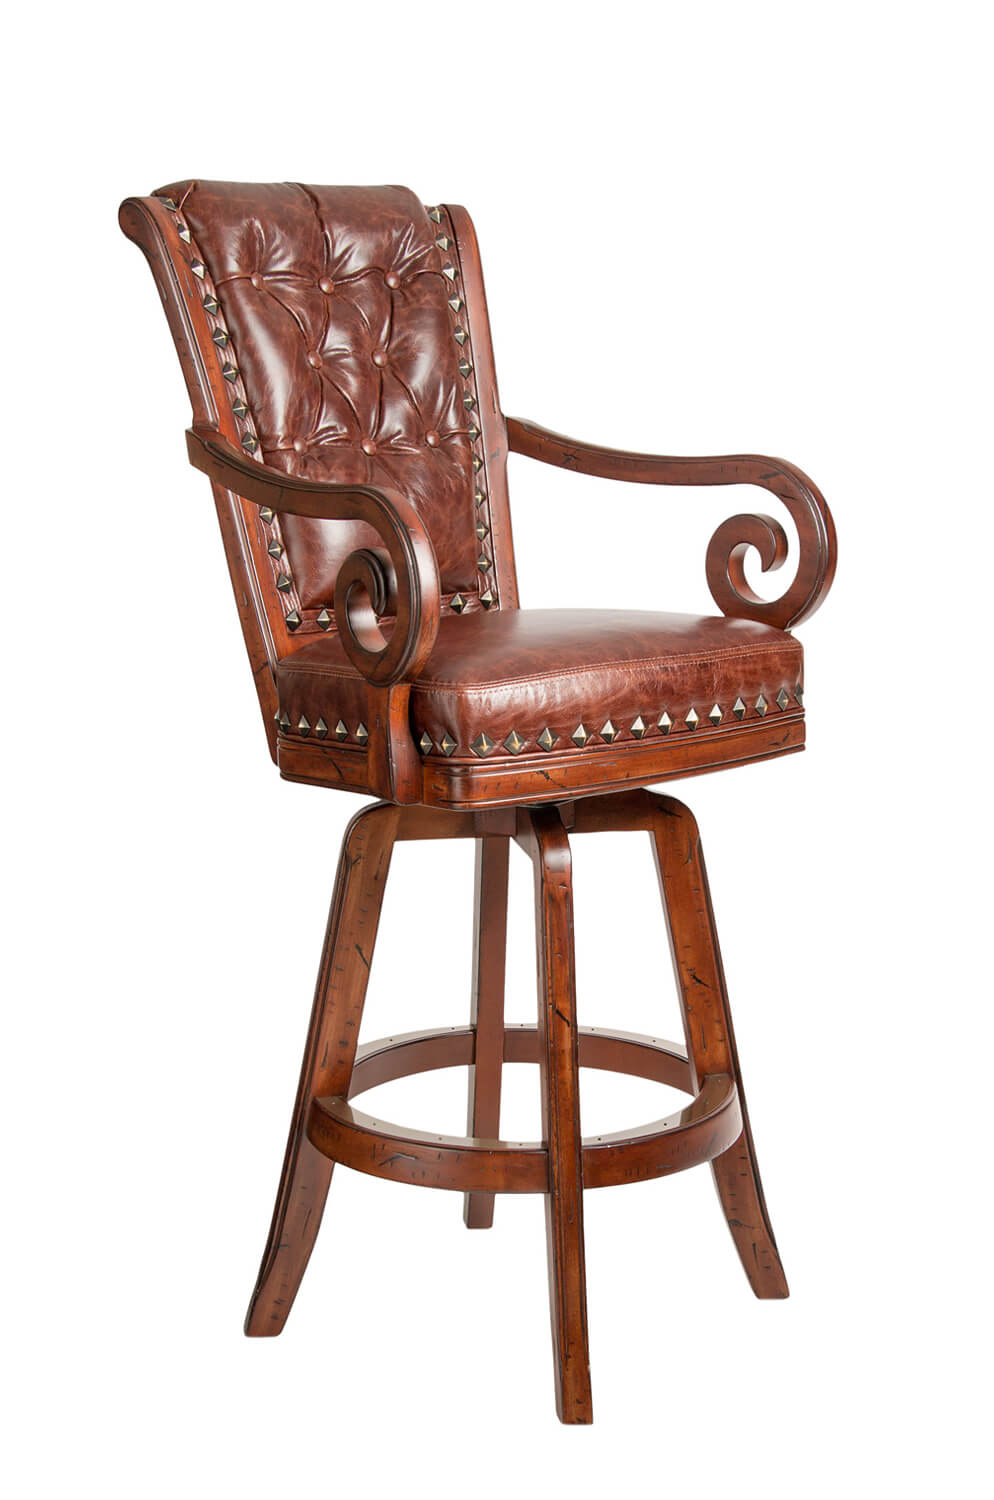 Darafeev's Pizarro Wood Upholstered Swivel Stool